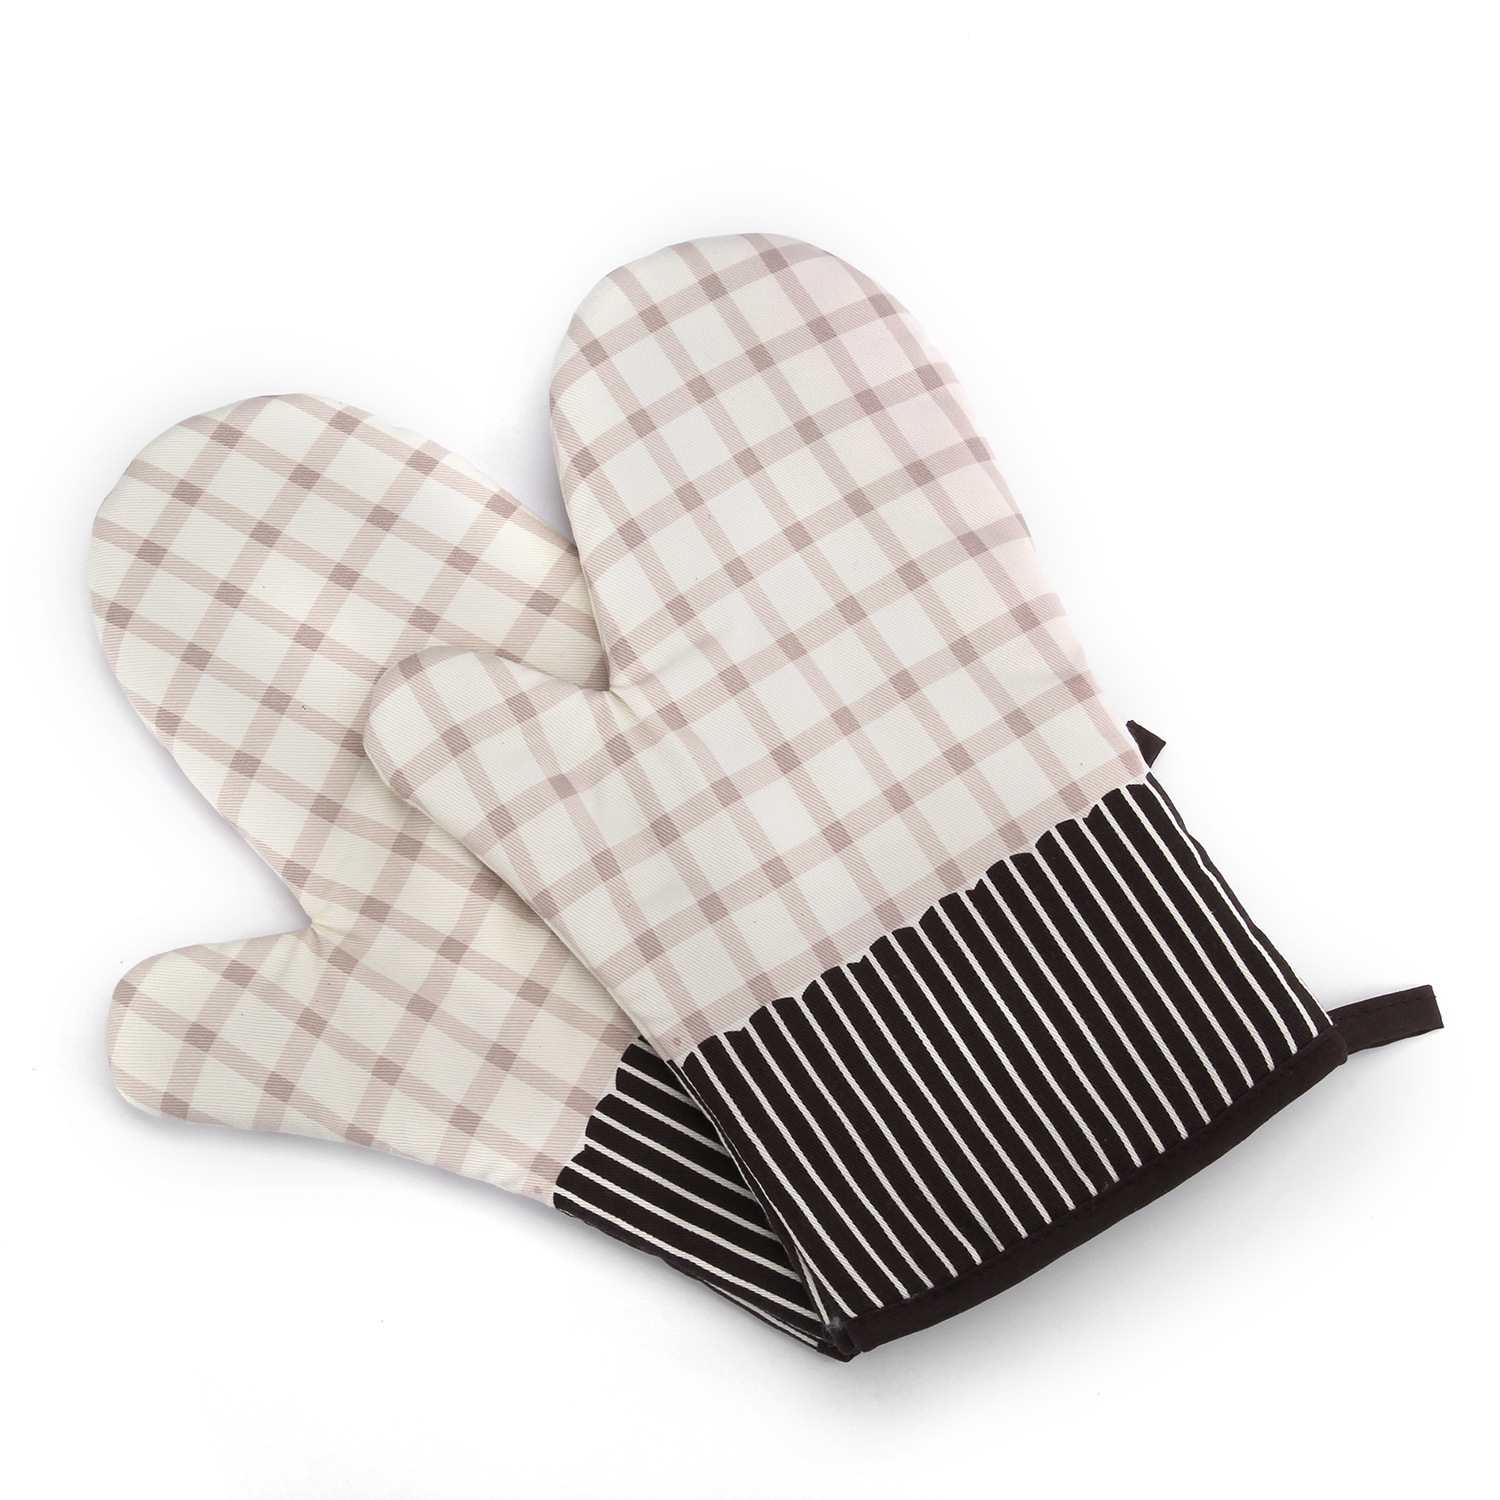 KCASA KC-PG03 1Pcs Cotton Oven Mitts Microwave Oven Kitchen BBQ Heat Resistant Pot Holder Gloves